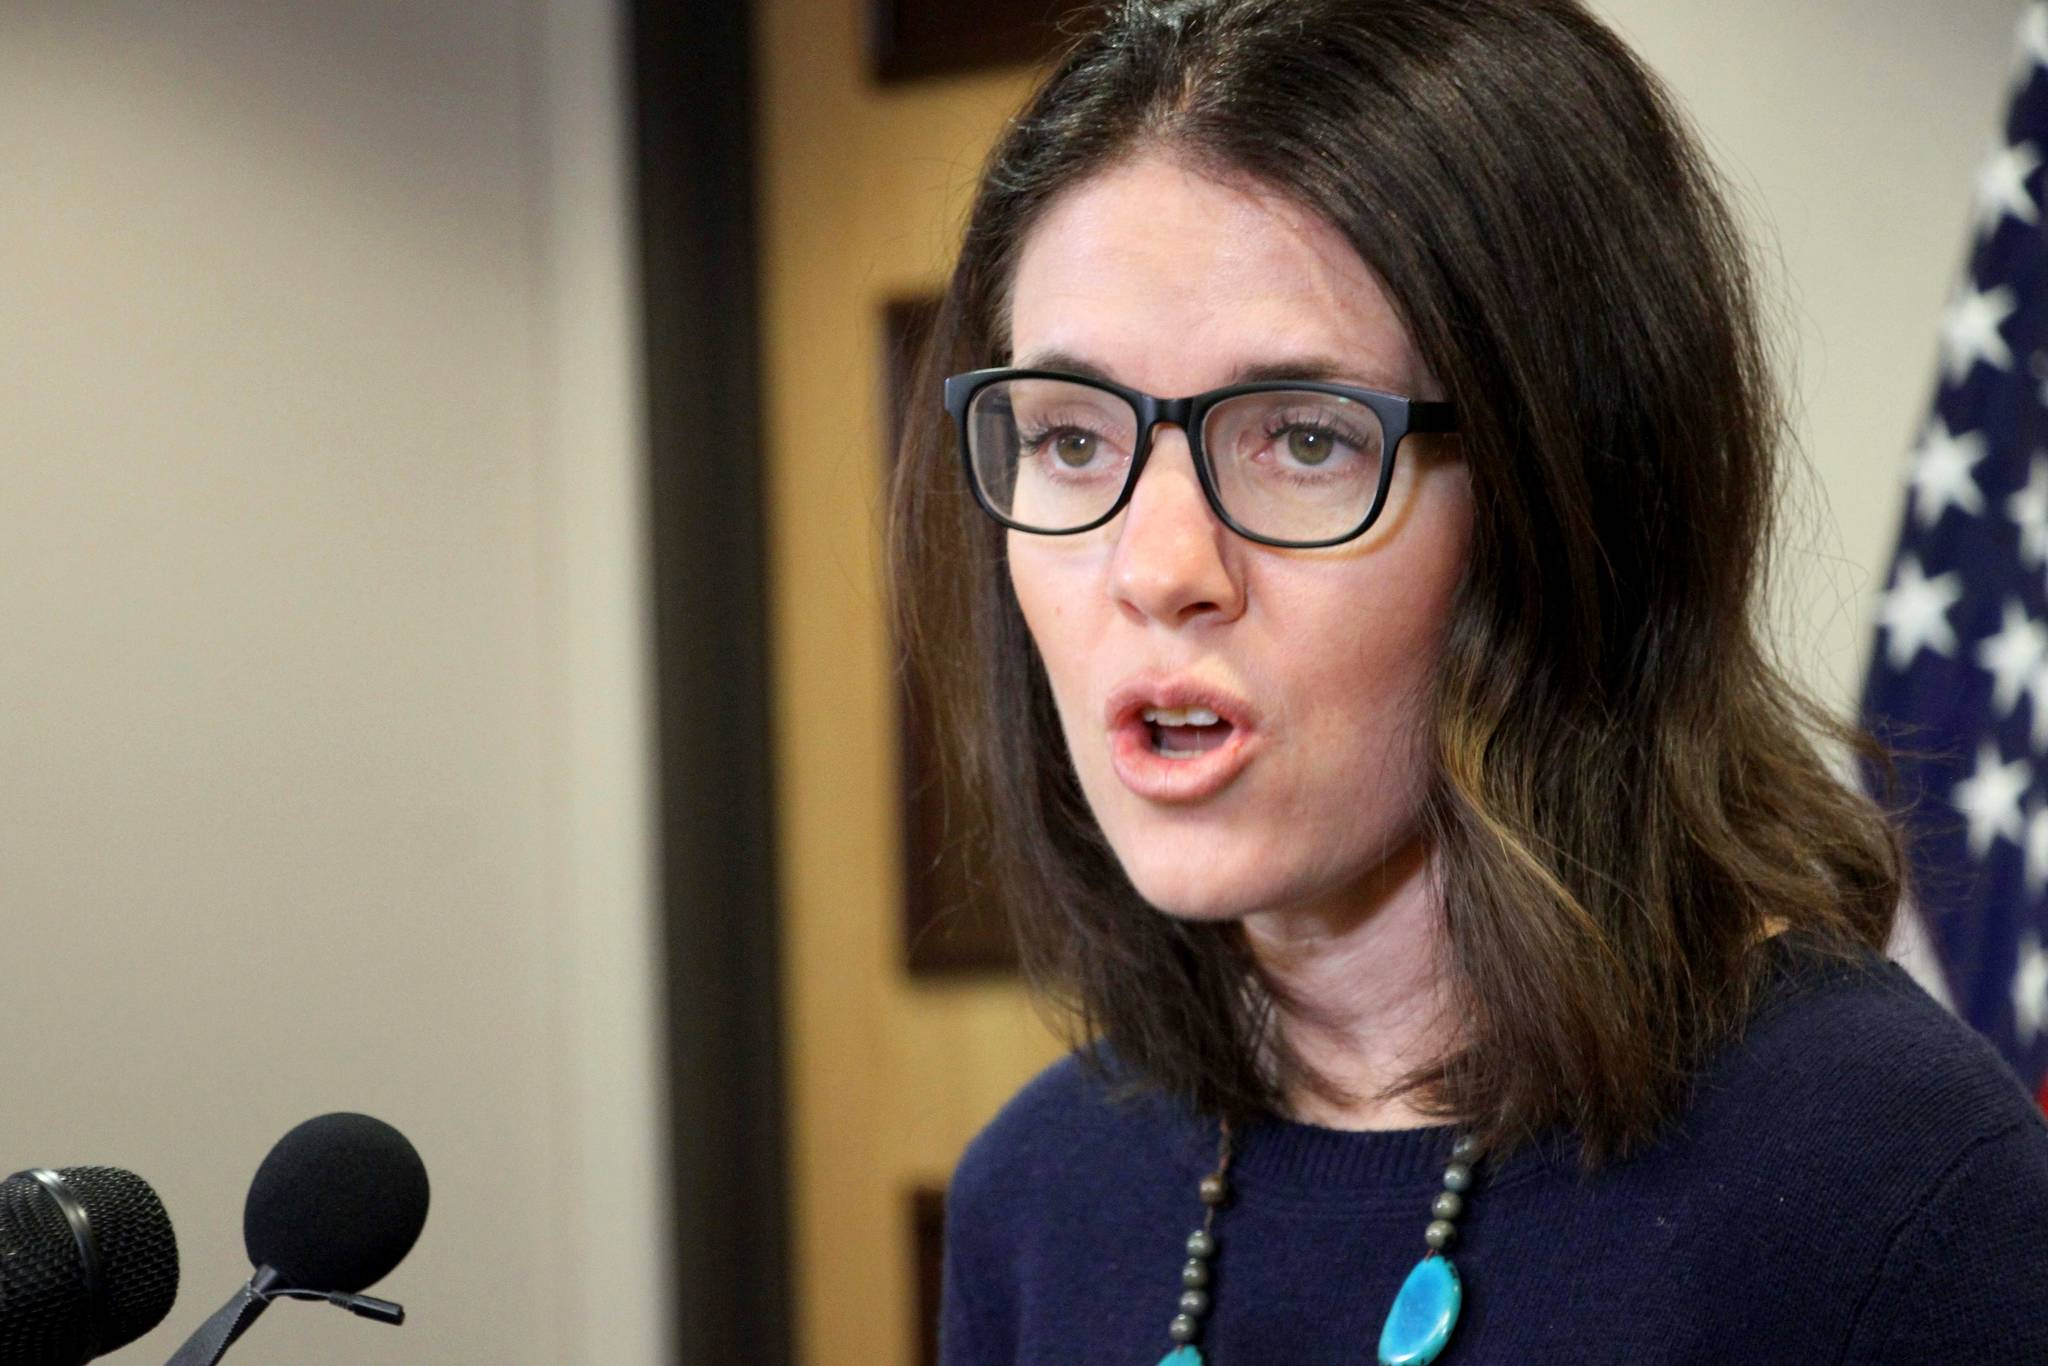 Dr. Anne Zink, the chief medical officer for the state of Alaska, addresses reporters at a news conference Monday, March 9, 2020, in Anchorage, Alaska. State officials said 23 people have been tested for the new coronavirus with no positive results. (AP Photo/Mark Thiessen)